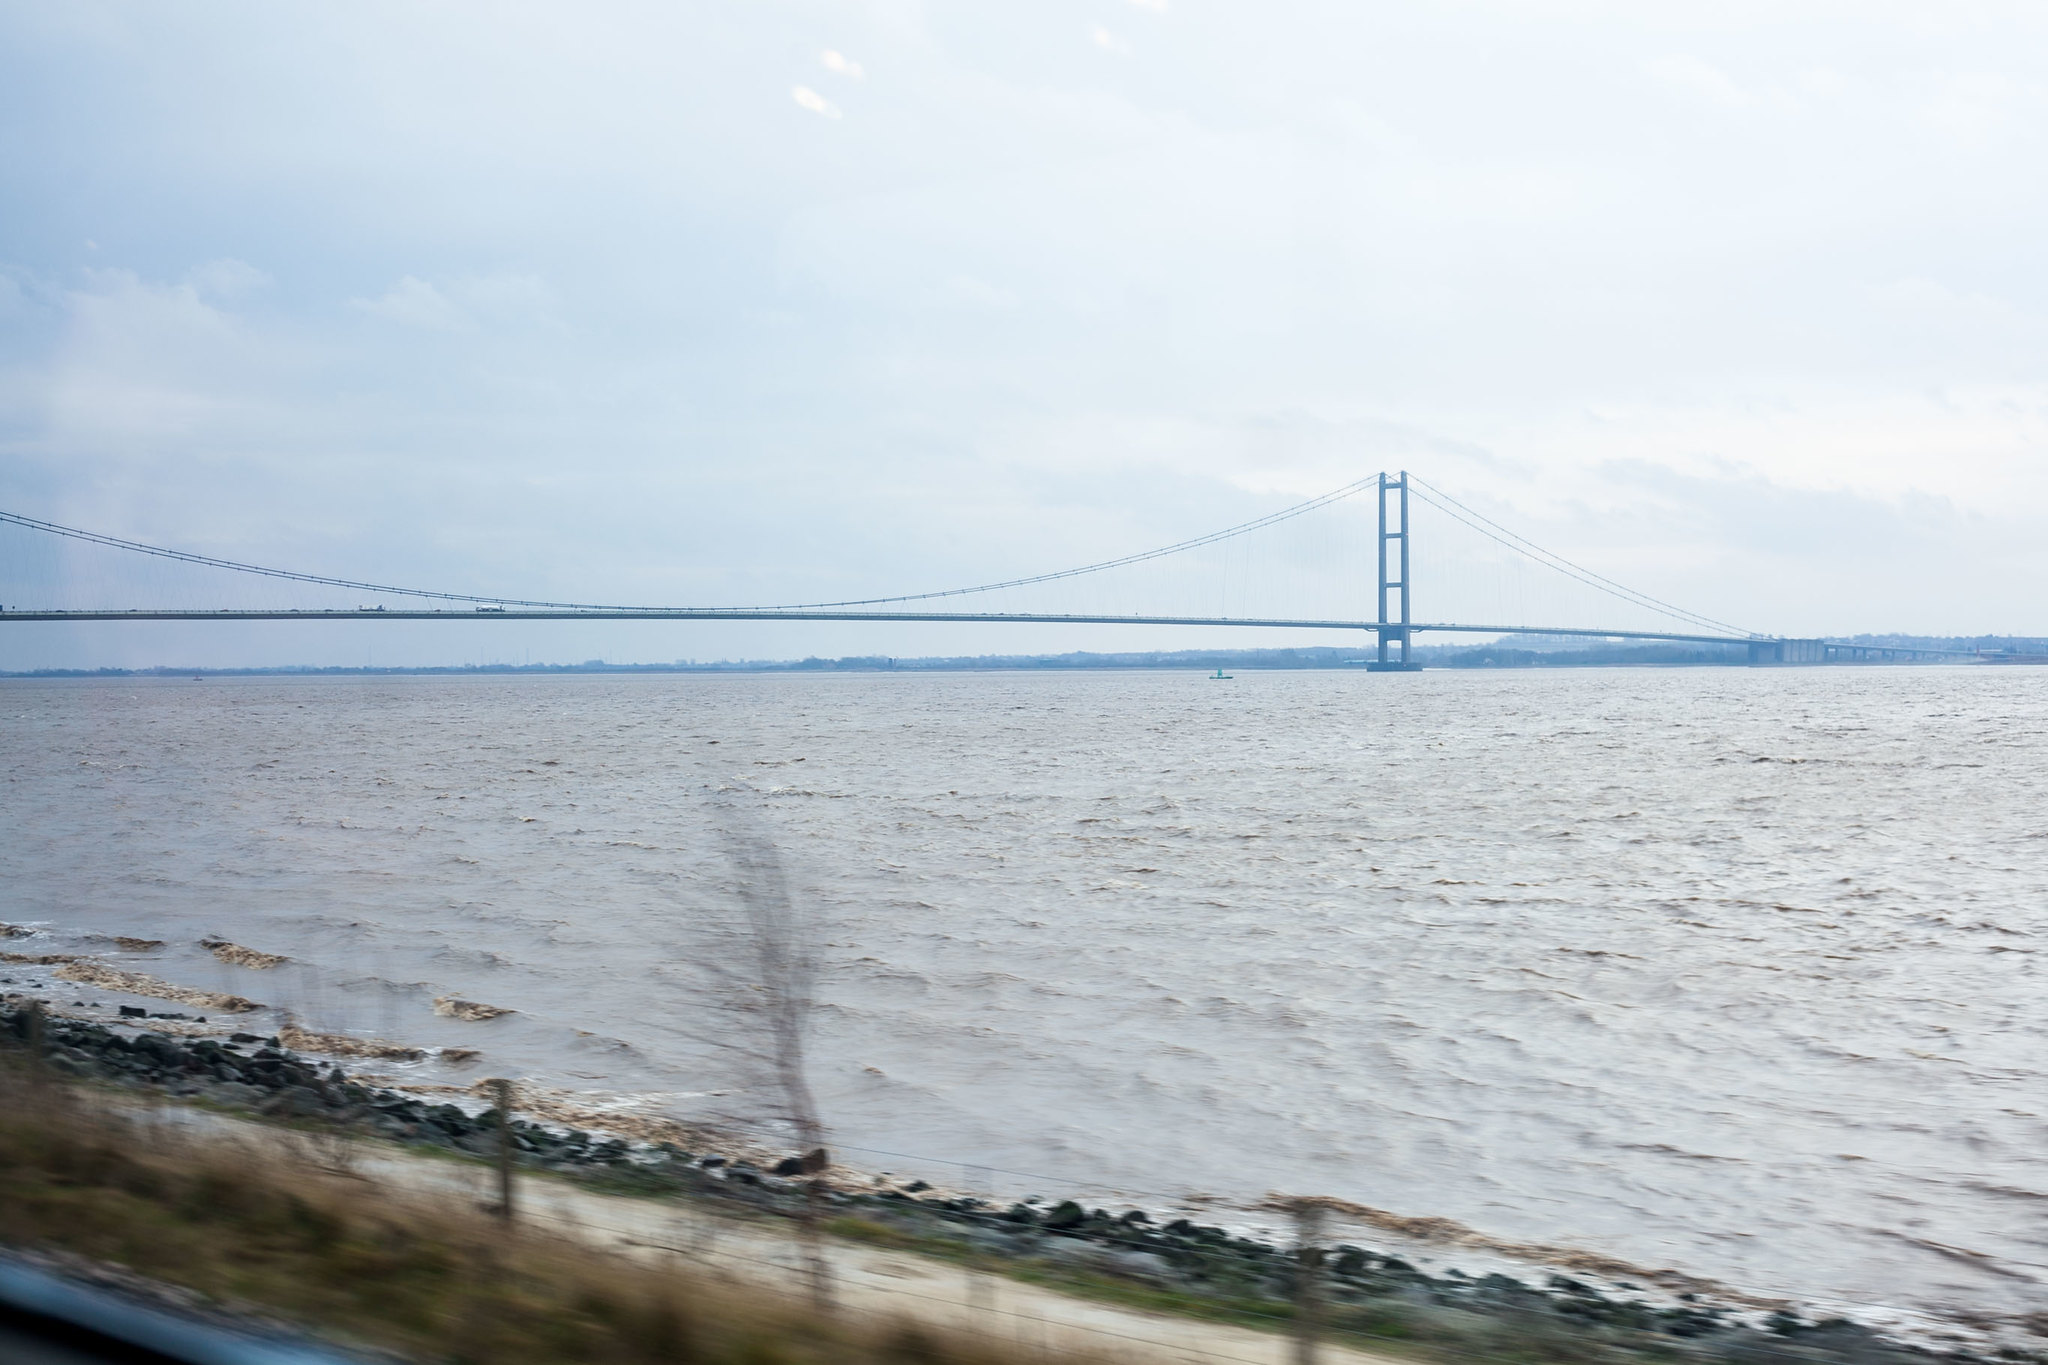 Humber Bridge - The world's eight-longest suspension bridge, seen from the train on the way into Hull from London.